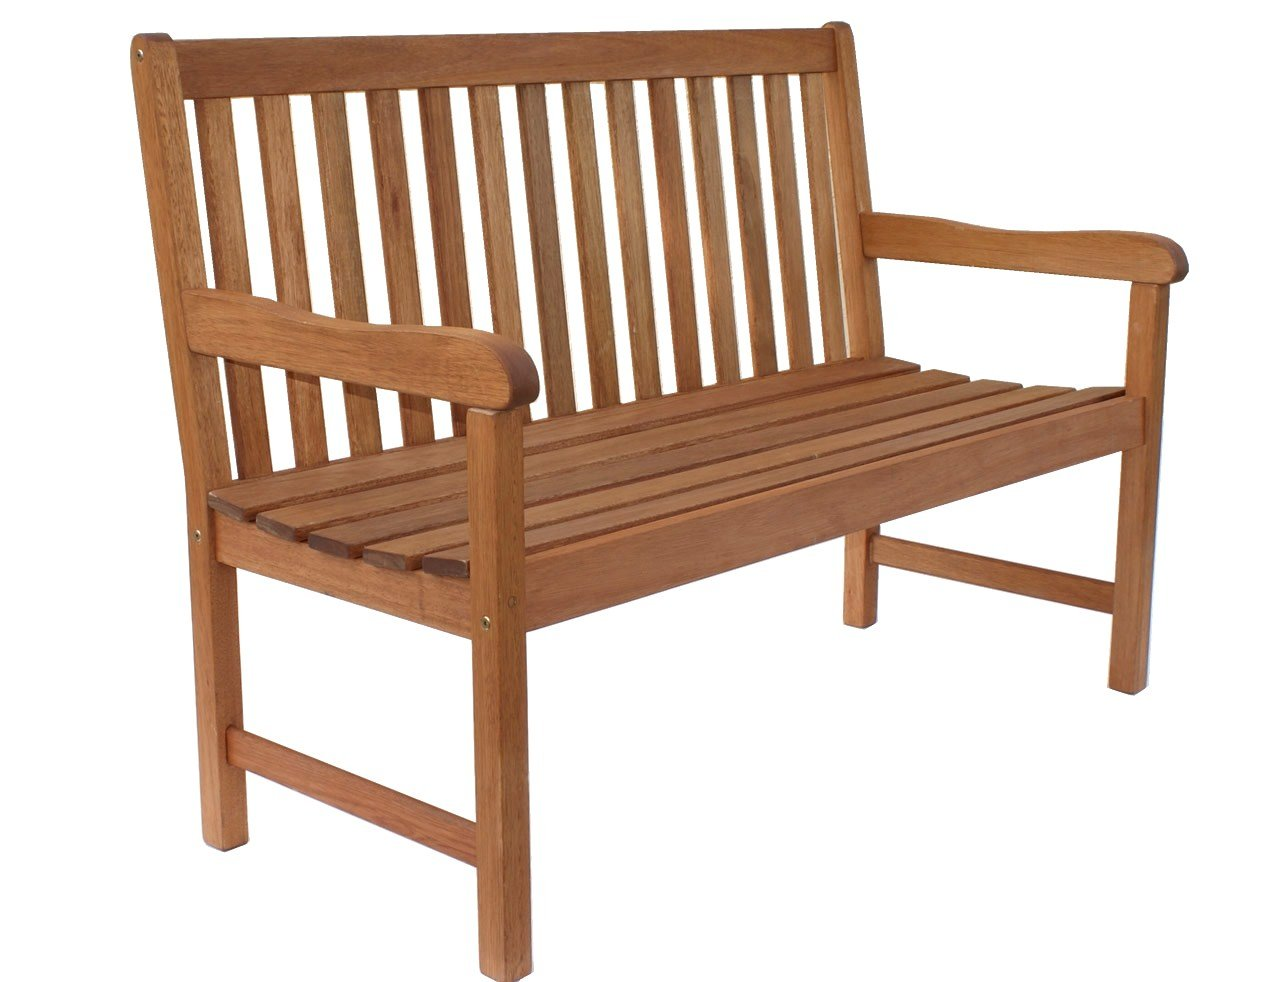 Amazonia Milano 4-Feet Eucalyptus Bench - Outdoor Patio Furniture